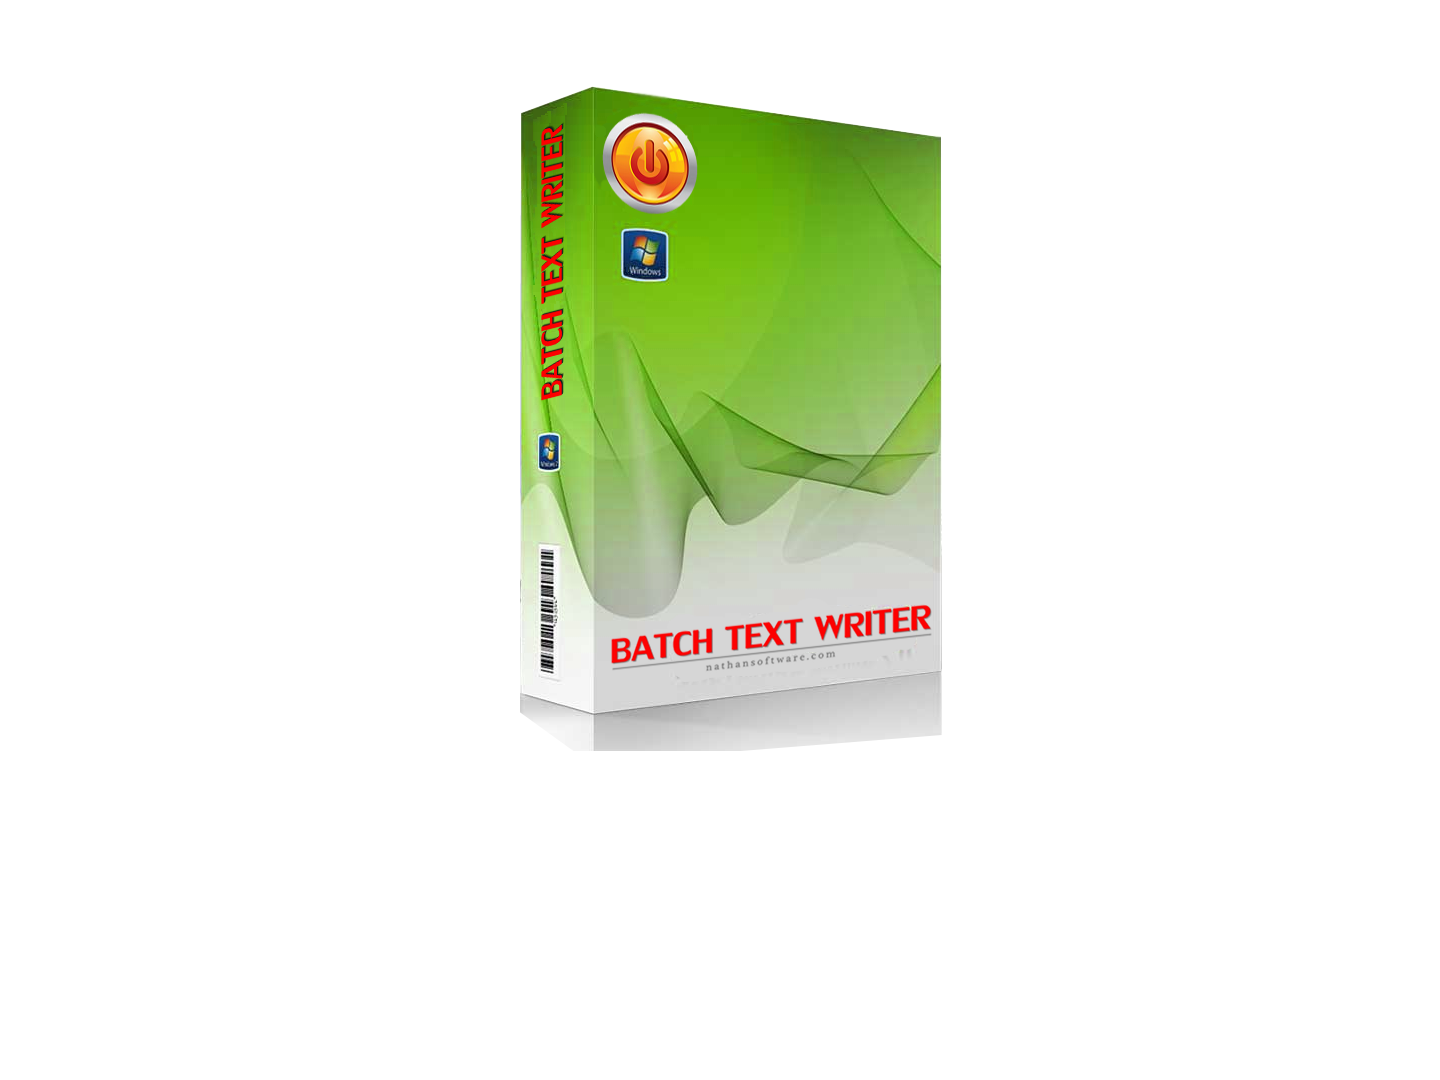 The Batch Text Writer